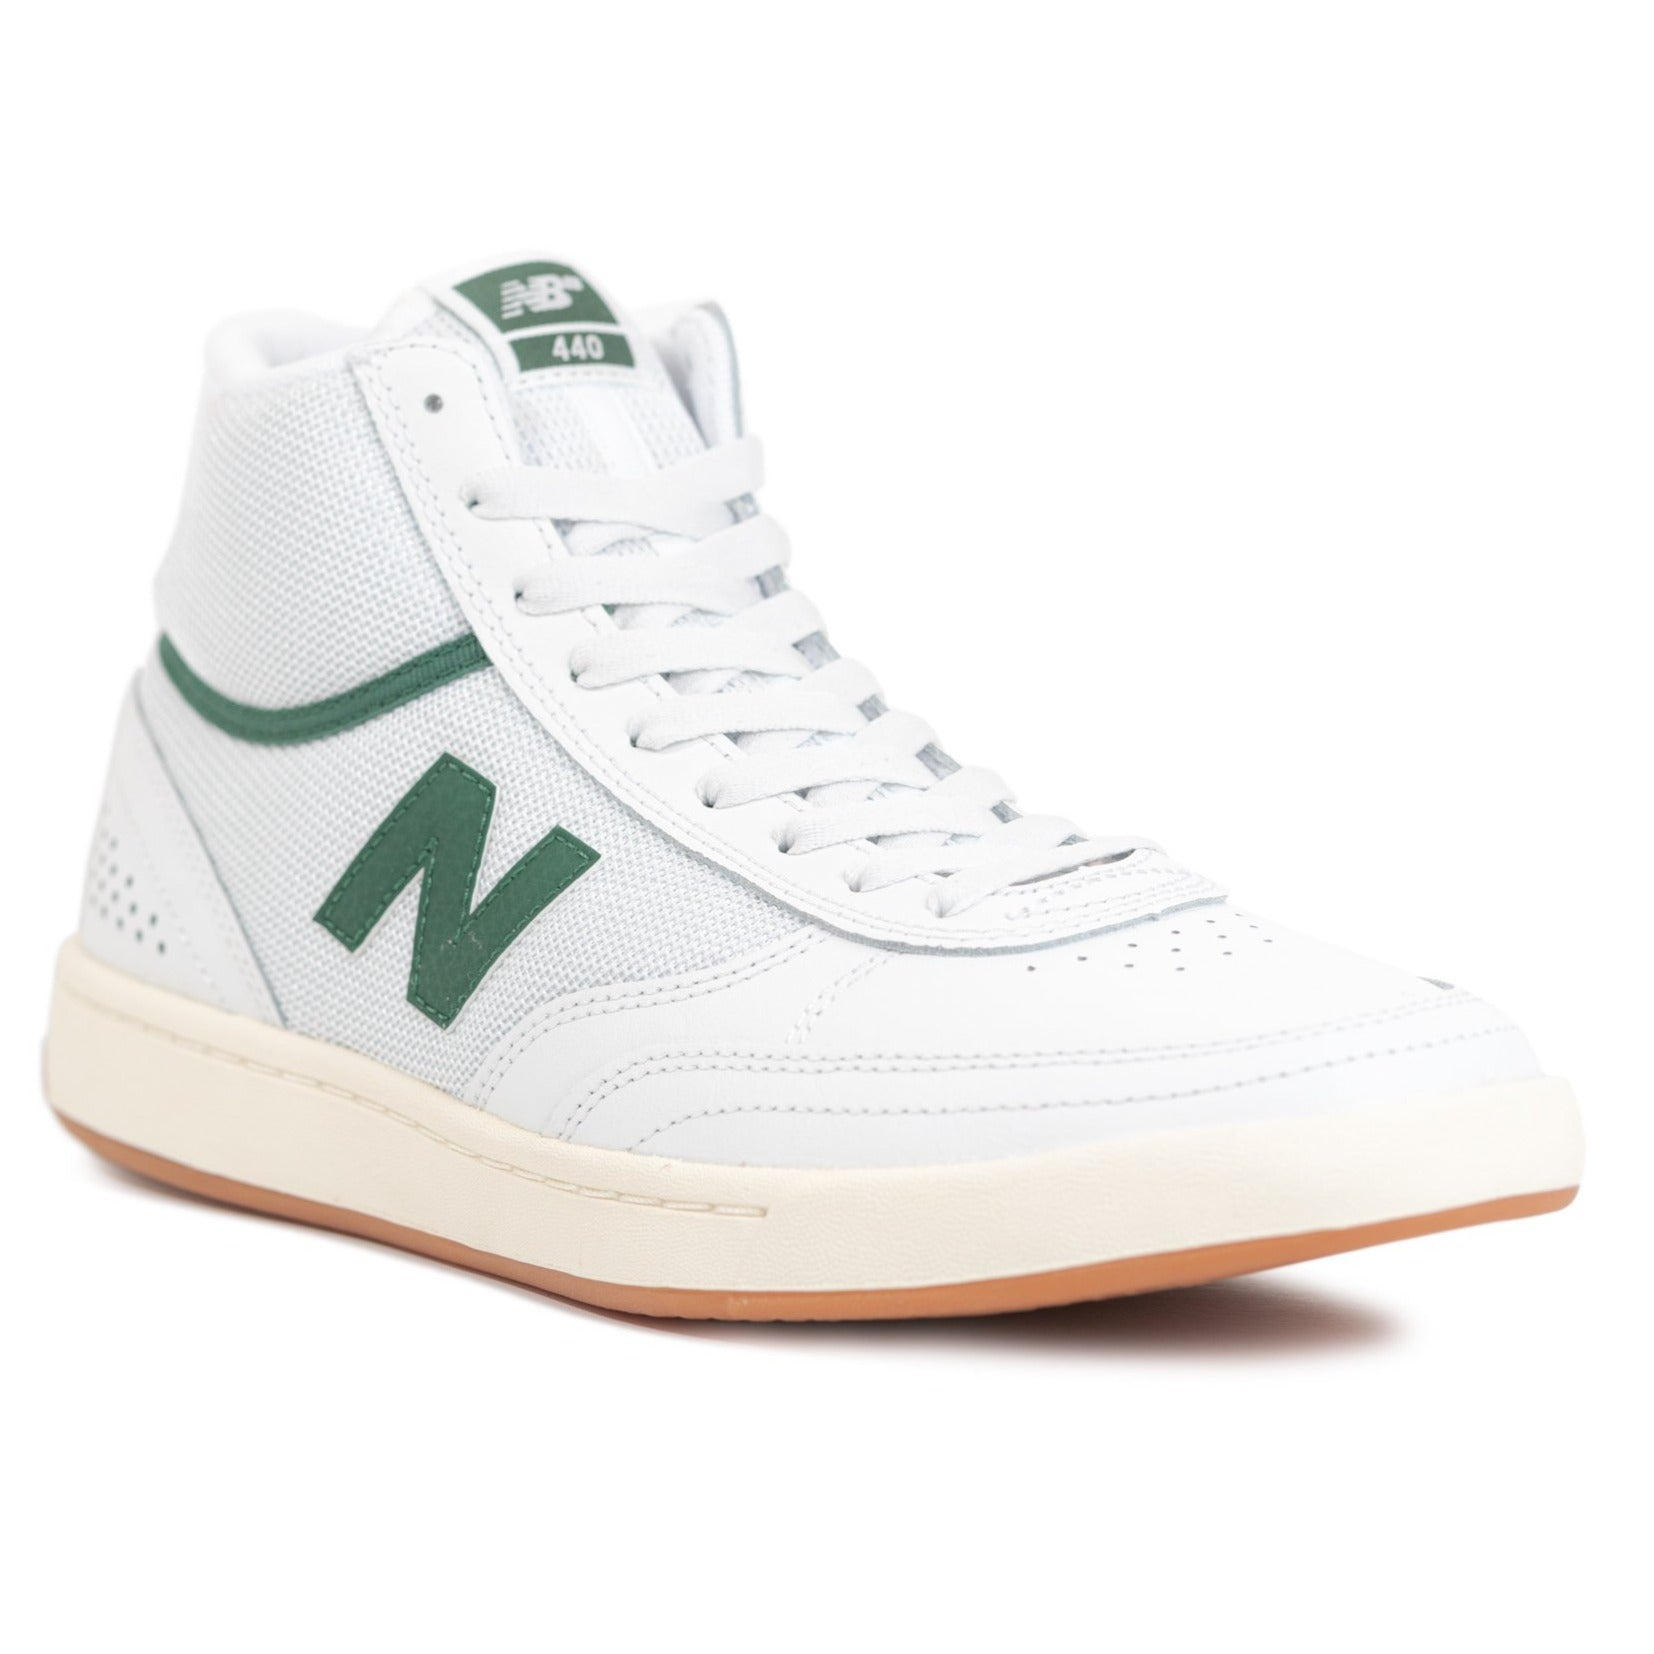 New Balance Numeric 440 High - White with Green (HWG)